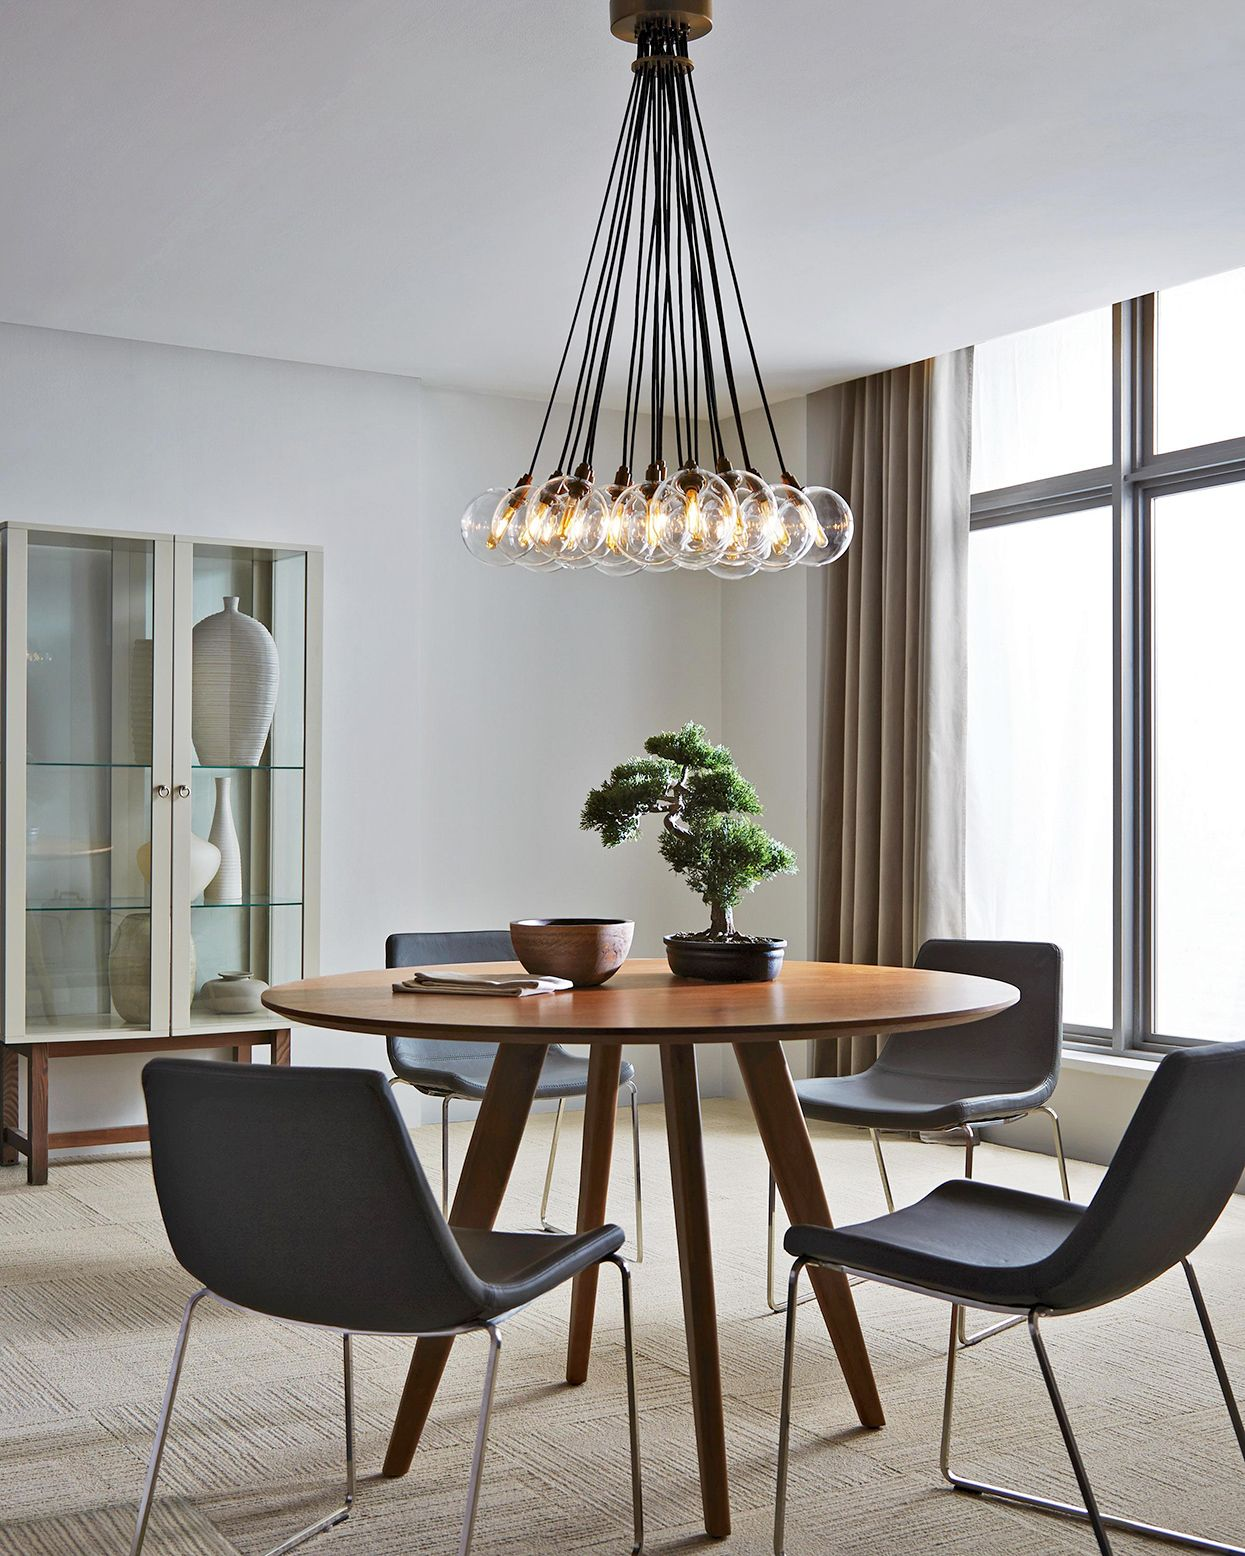 15 Small Dining Room Table Ideas Tips: 15 Essential Tips To Dramatically Improve Your Home's